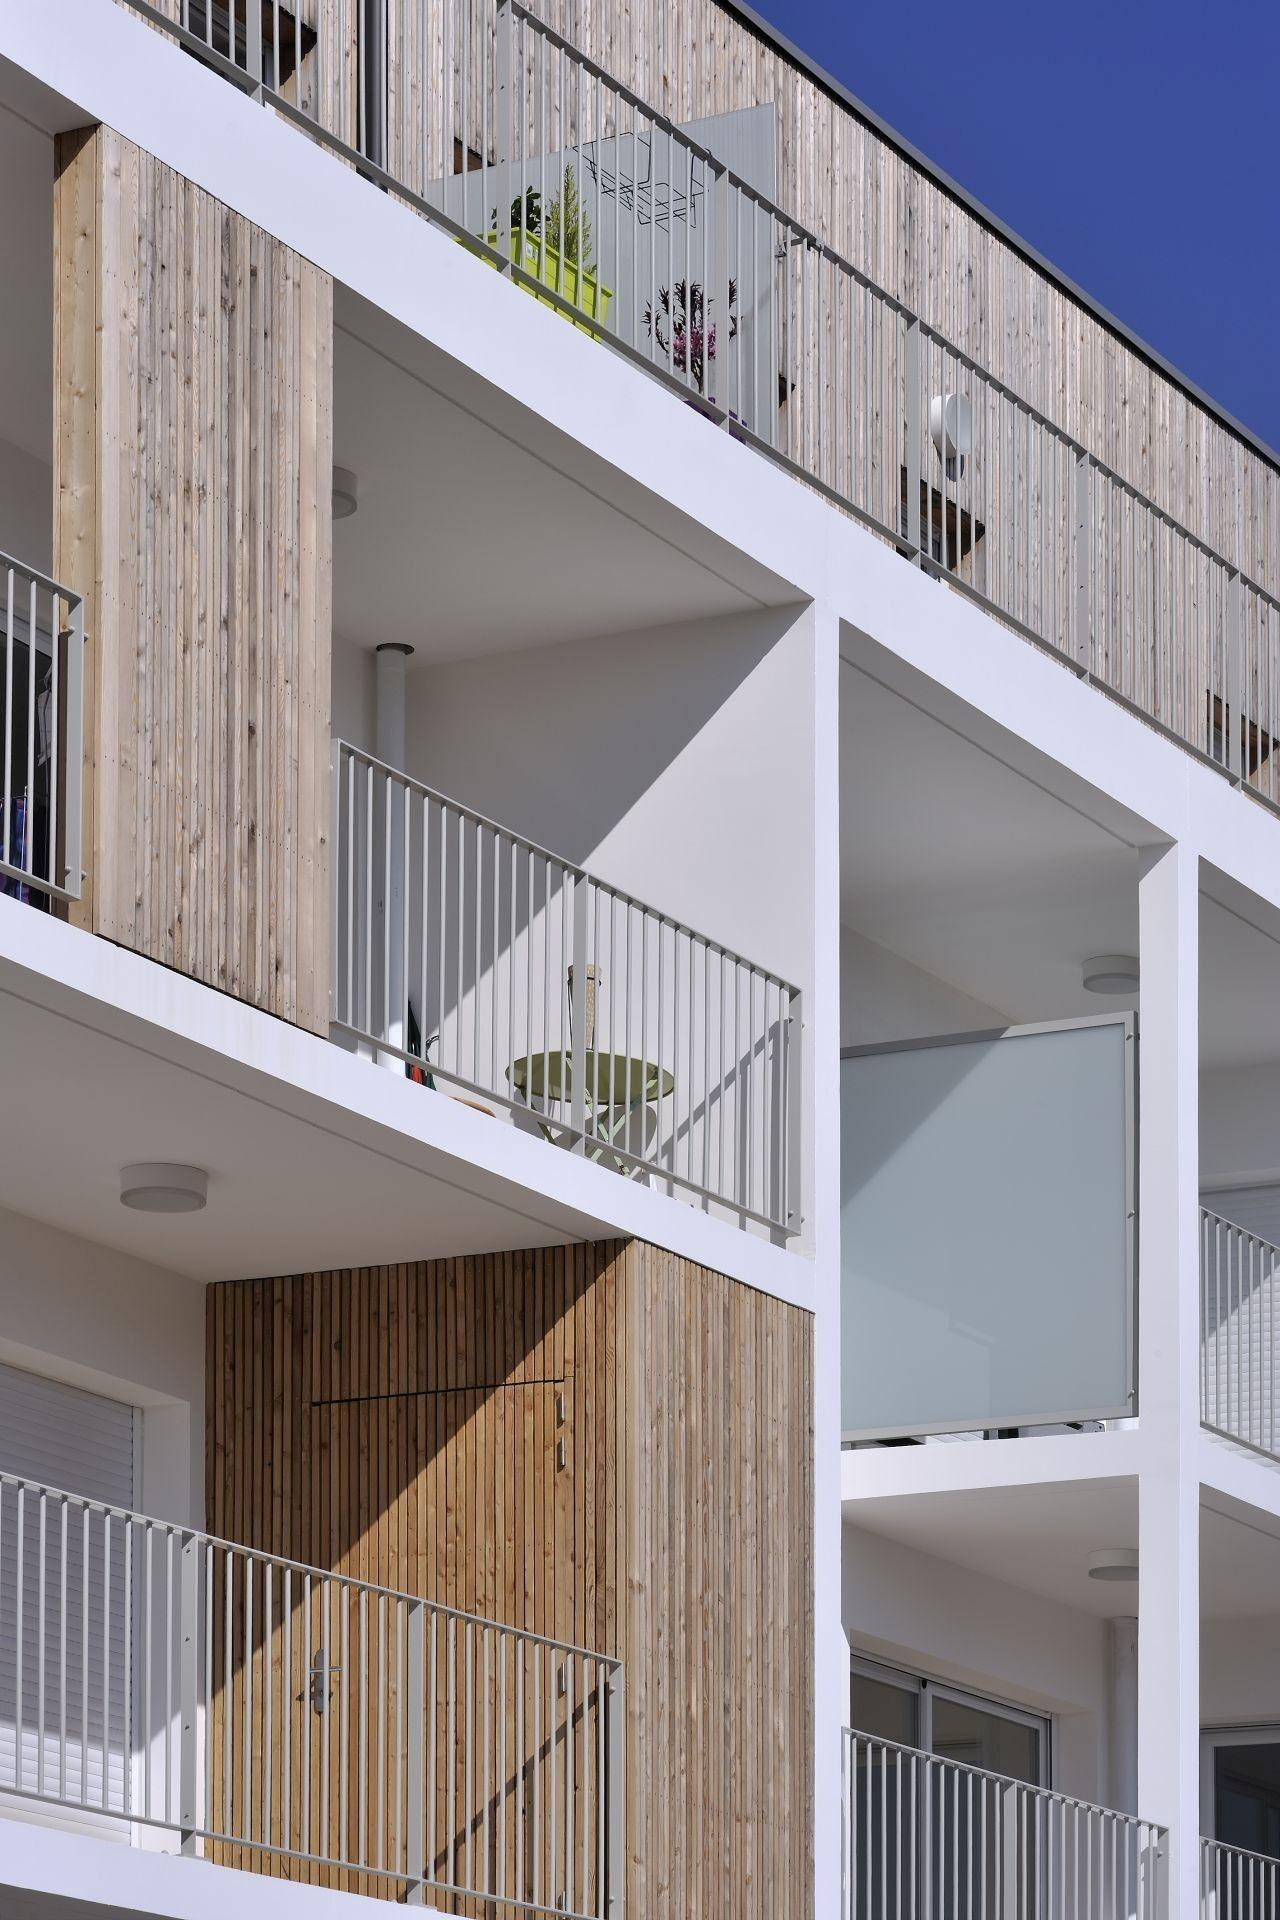 Stylish Balconies Become Integral Parts Their Buildings